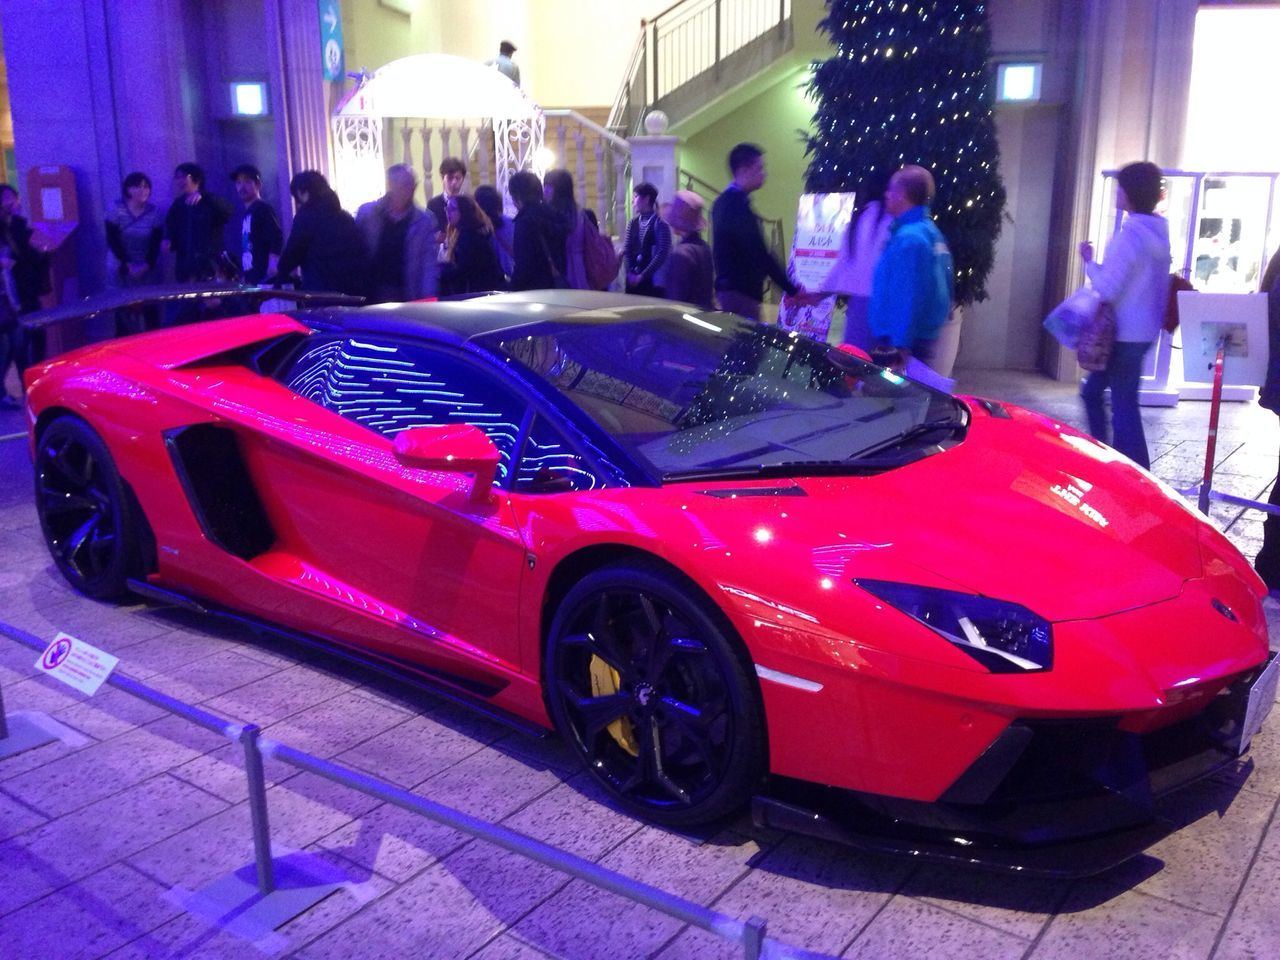 car, red, men, luxury, real people, transportation, women, architecture, land vehicle, large group of people, night, standing, illuminated, outdoors, building exterior, people